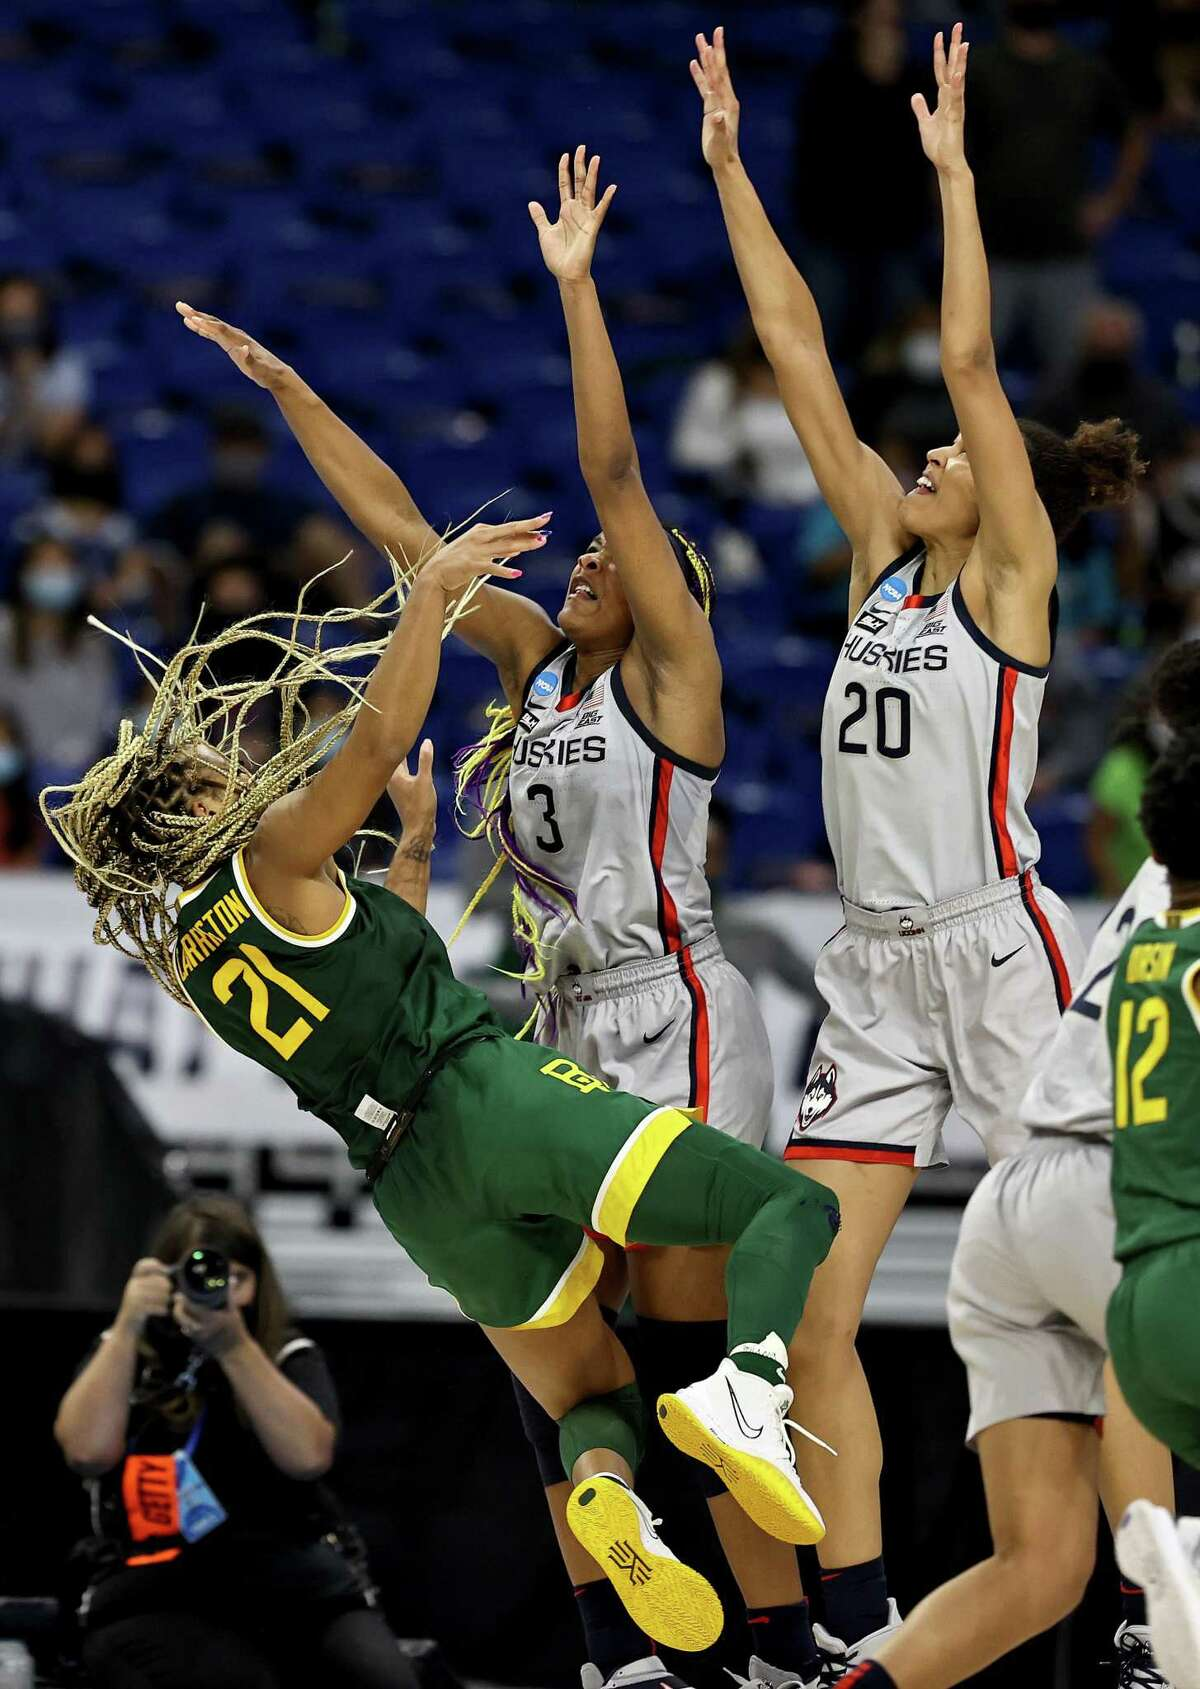 DiJonai Carrington (21) of the Baylor Lady Bears tries to take a shot as Aaliyah Edwards (3) and Olivia Nelson-Ododa (20) of the UConn Huskies defend in the final minutes of the game during the Elite Eight round of the Women's NCAA Tournament at the Alamodome on Monday in San Antonio, Texas. The UConn Huskies defeated the Baylor Lady Bears 69-67 to advance to the Final Four.